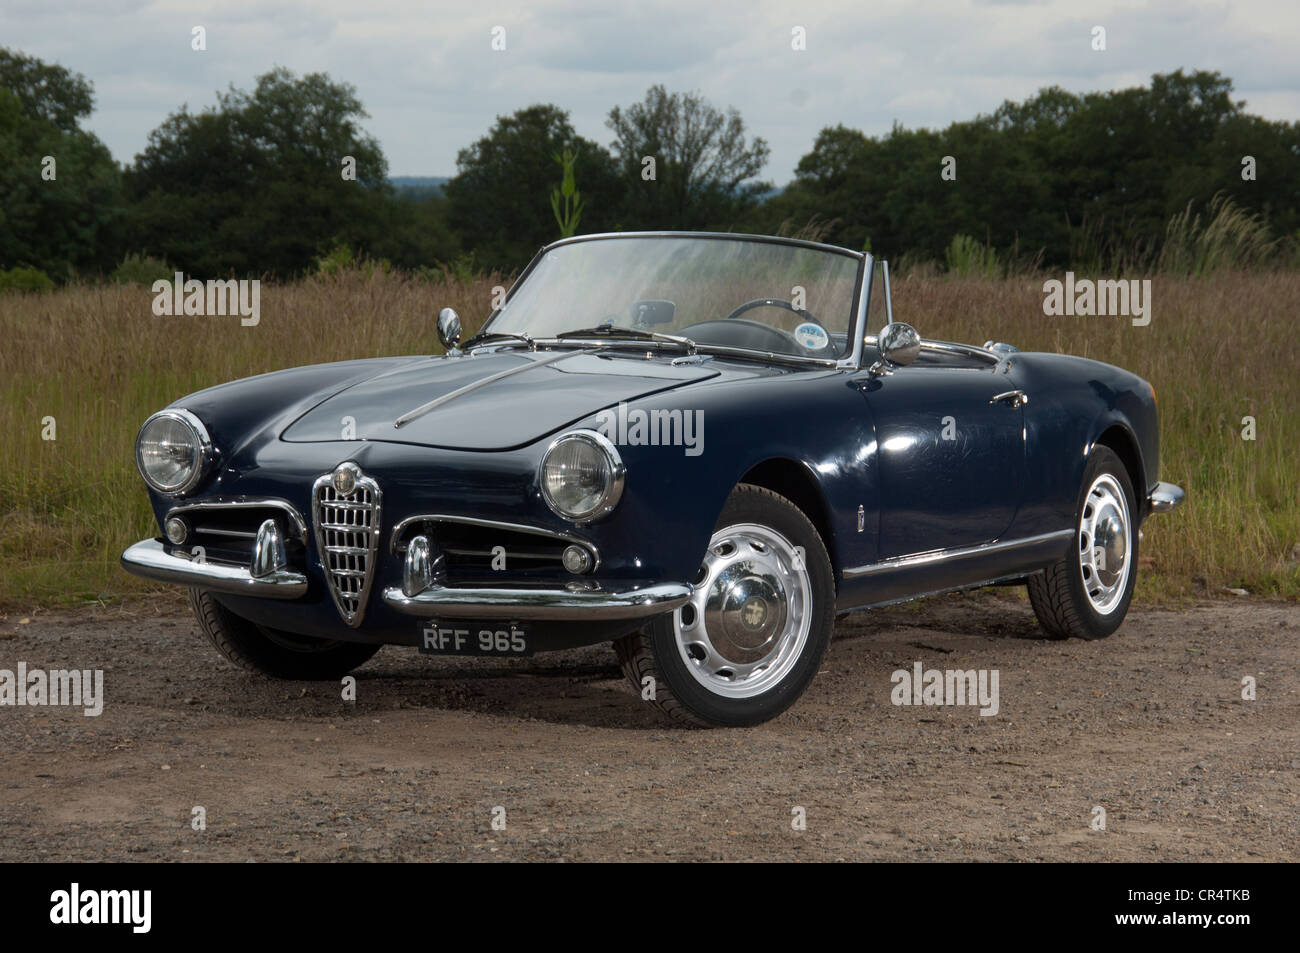 alfa romeo giulietta spider convertible italian sports car stock photo royalty free image. Black Bedroom Furniture Sets. Home Design Ideas